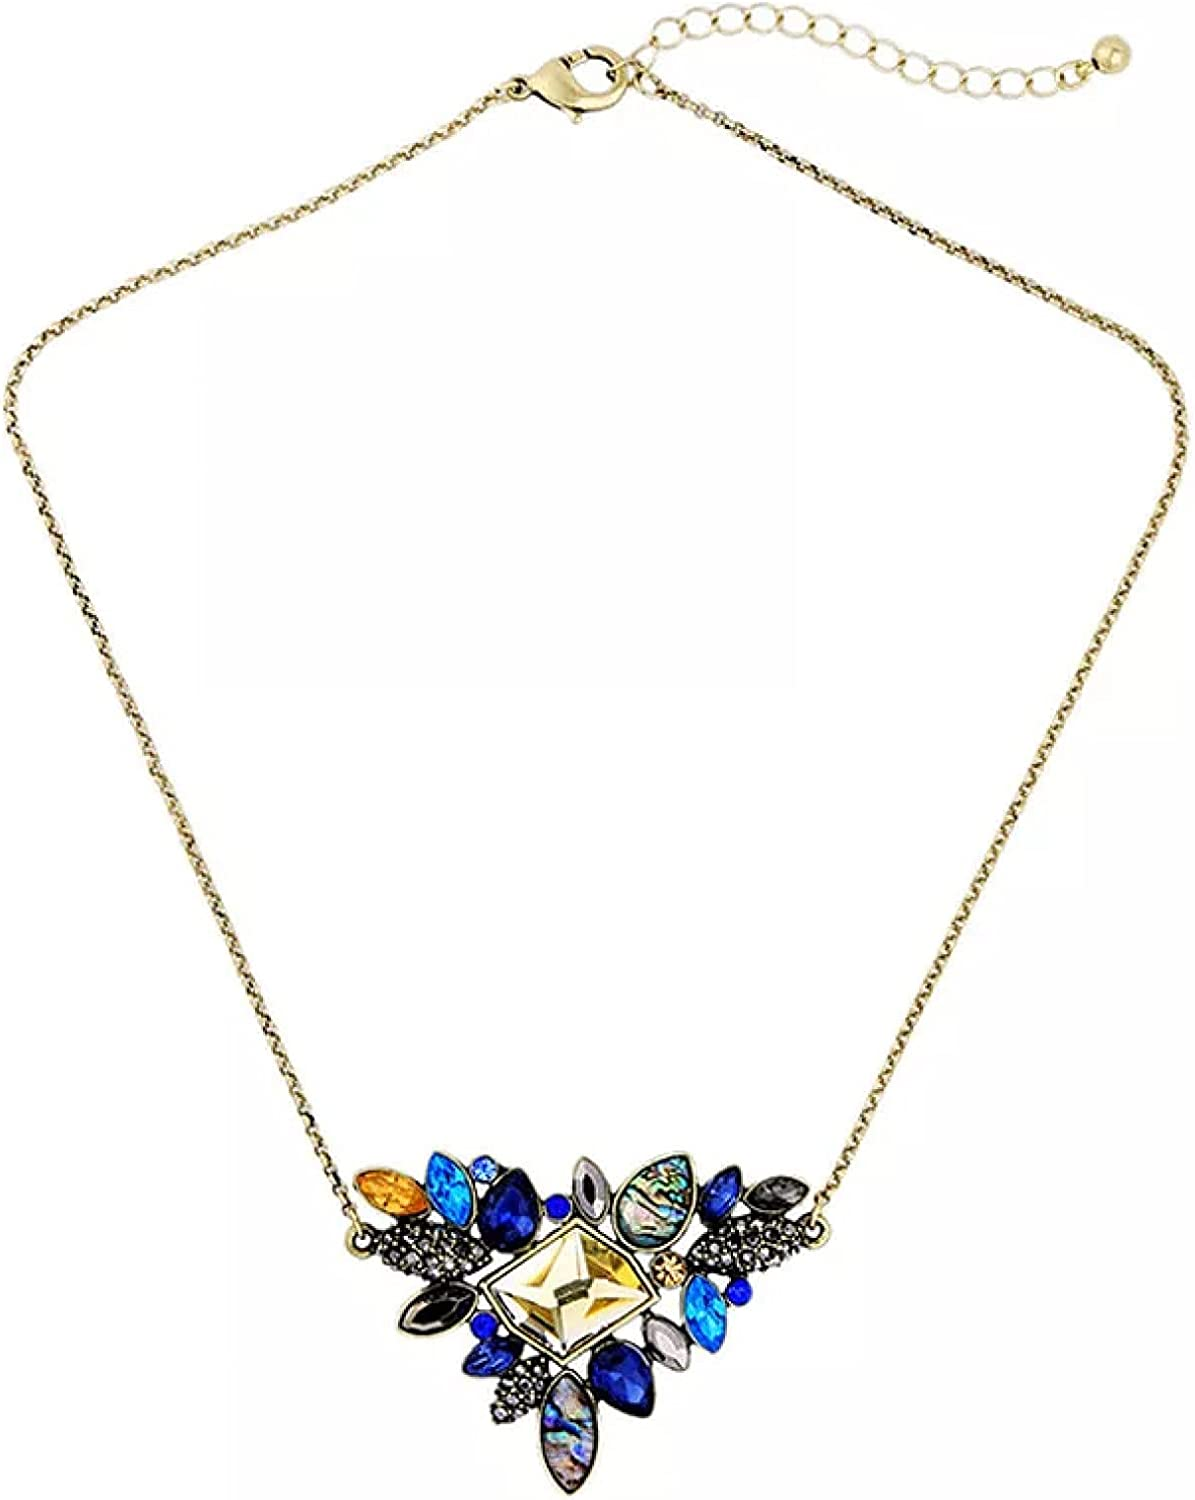 Necklace 2021 Exquisite Rhinestone Pendant Necklace Thin Chain Collar Necklace Jewelry for Women